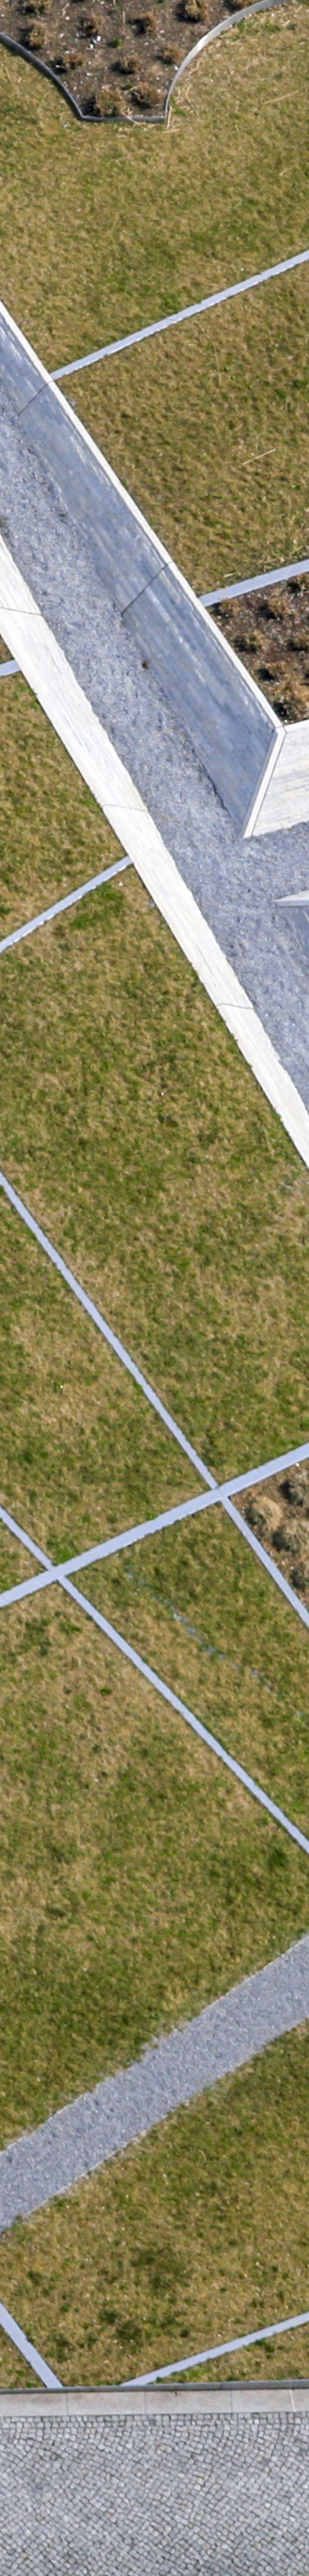 Aerial view of a sunken garden that was created for the BuGa 2005 in the park of the Messestadt Riem - Klaus Leidorf Aerial Photography